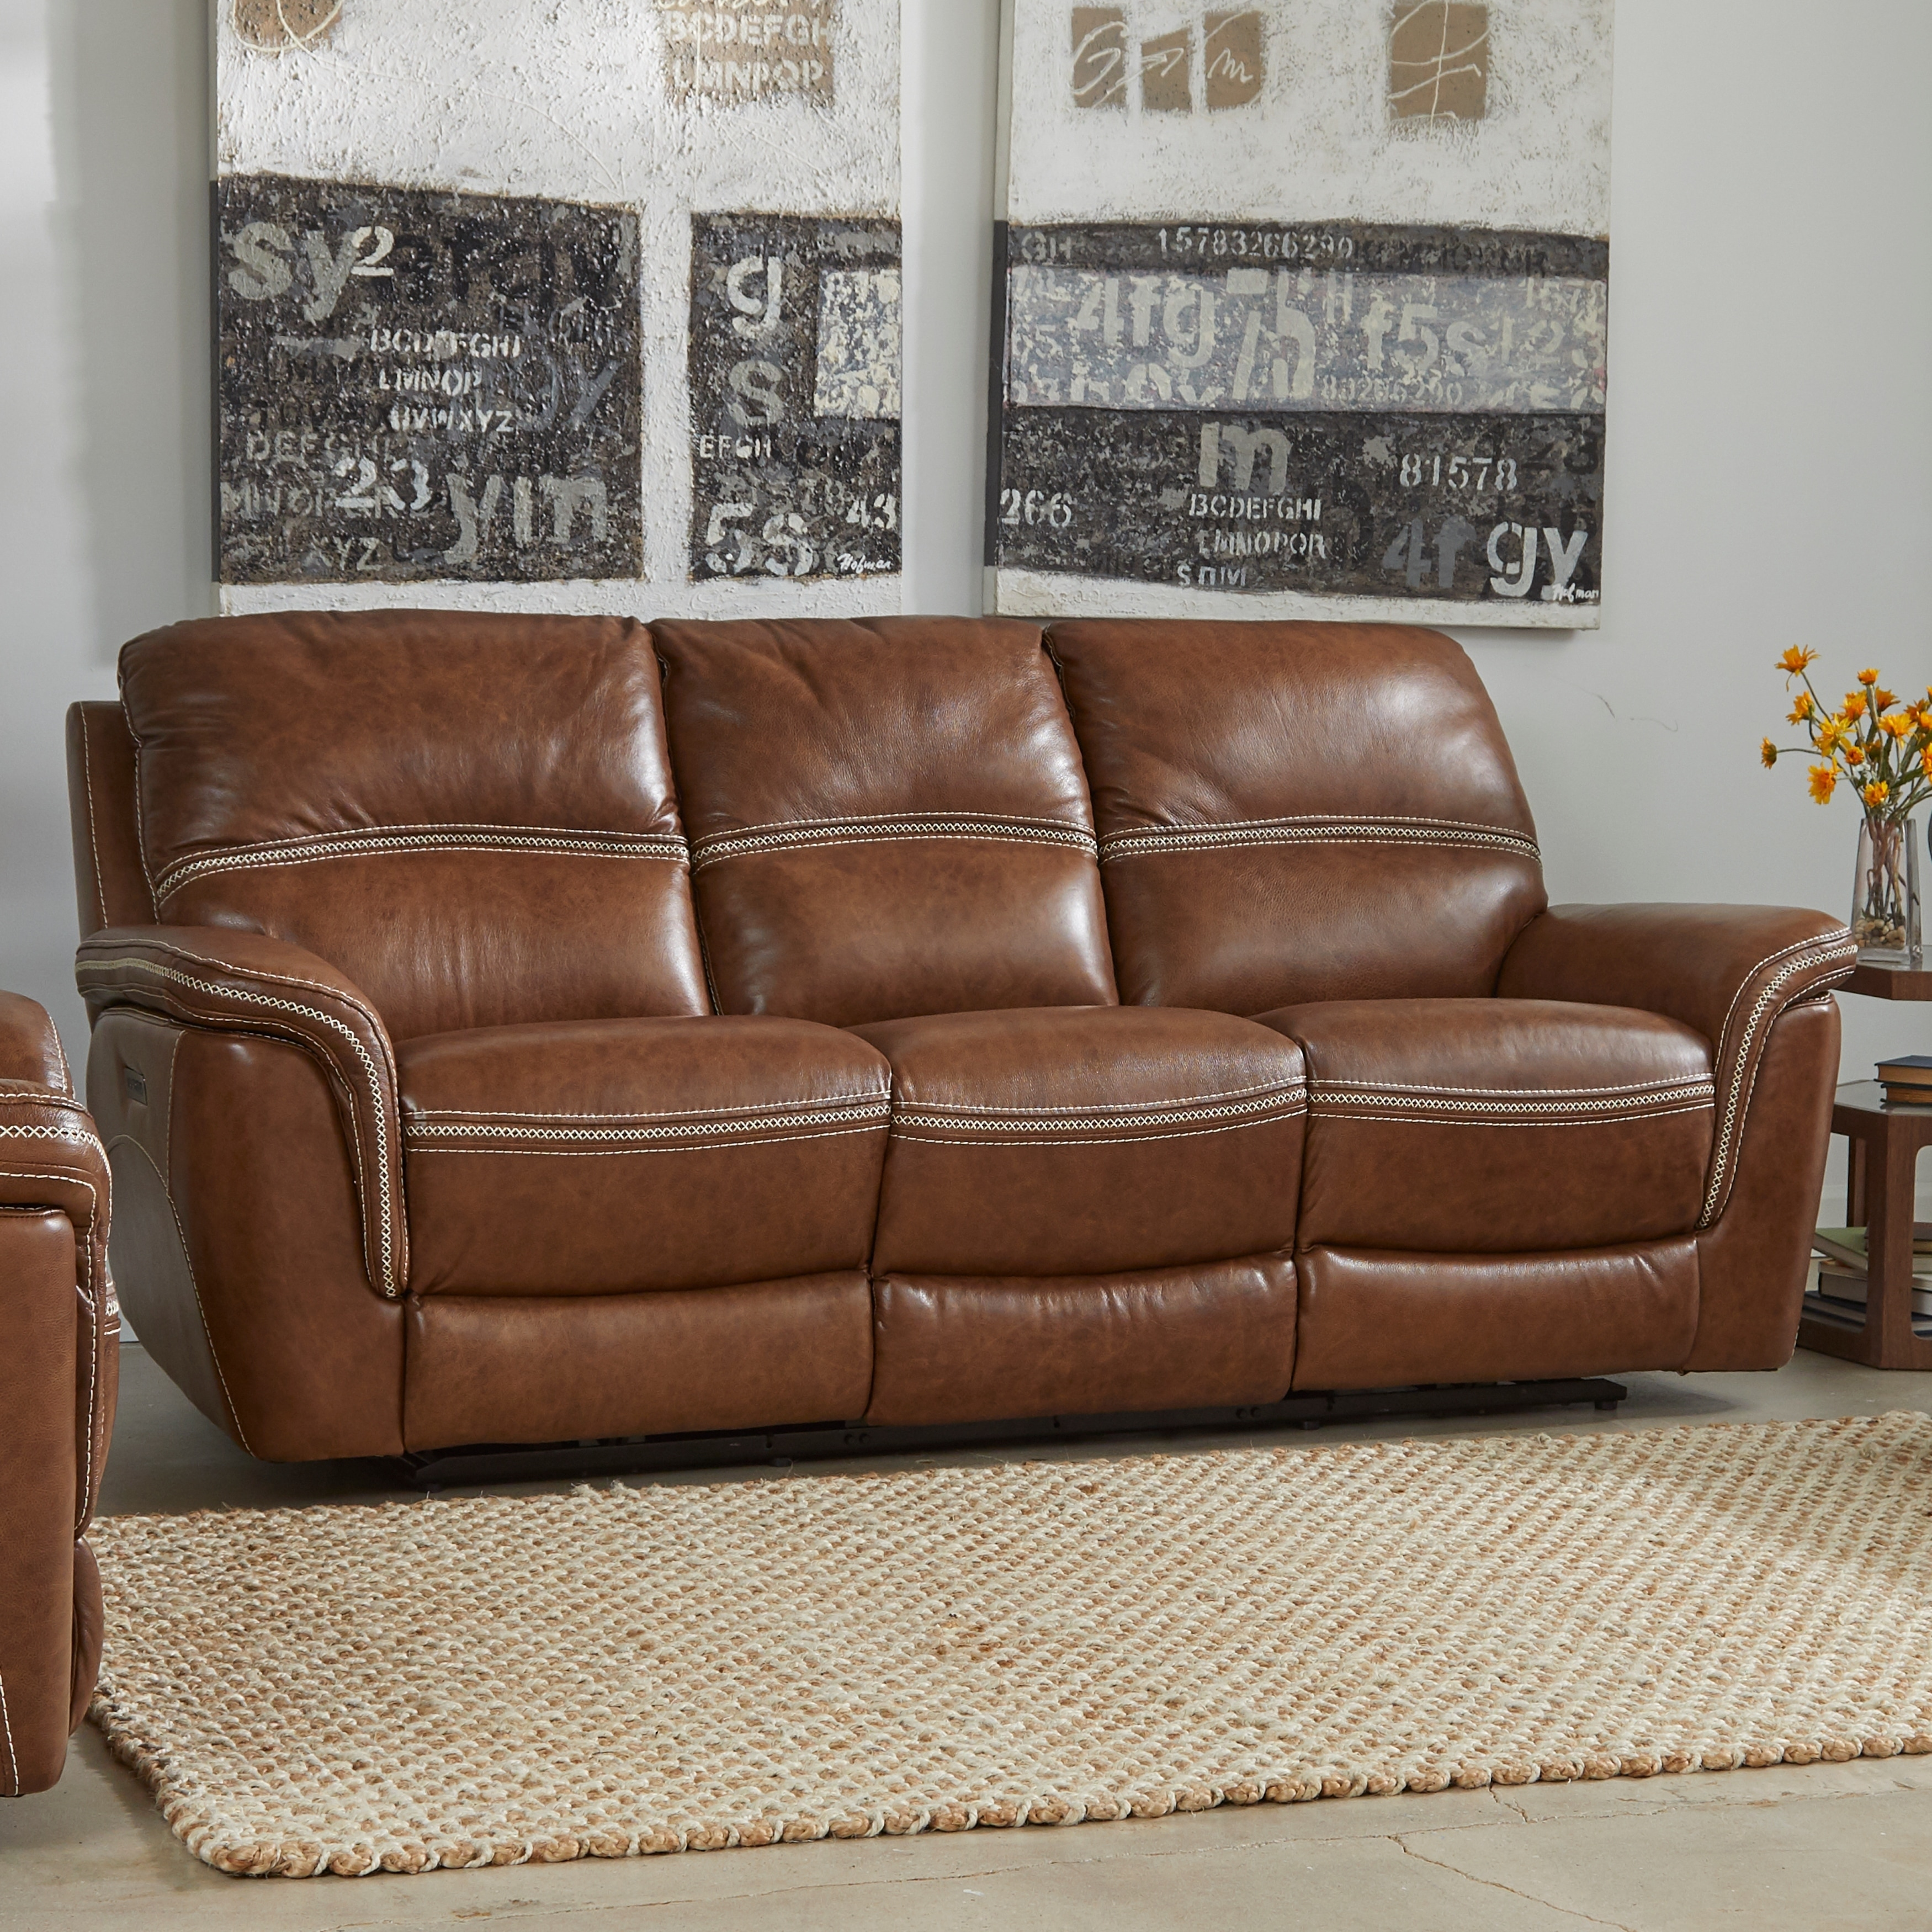 buy sofas couches clearance liquidation online at overstock rh overstock com patio sofas on clearance sofas on clearance near me